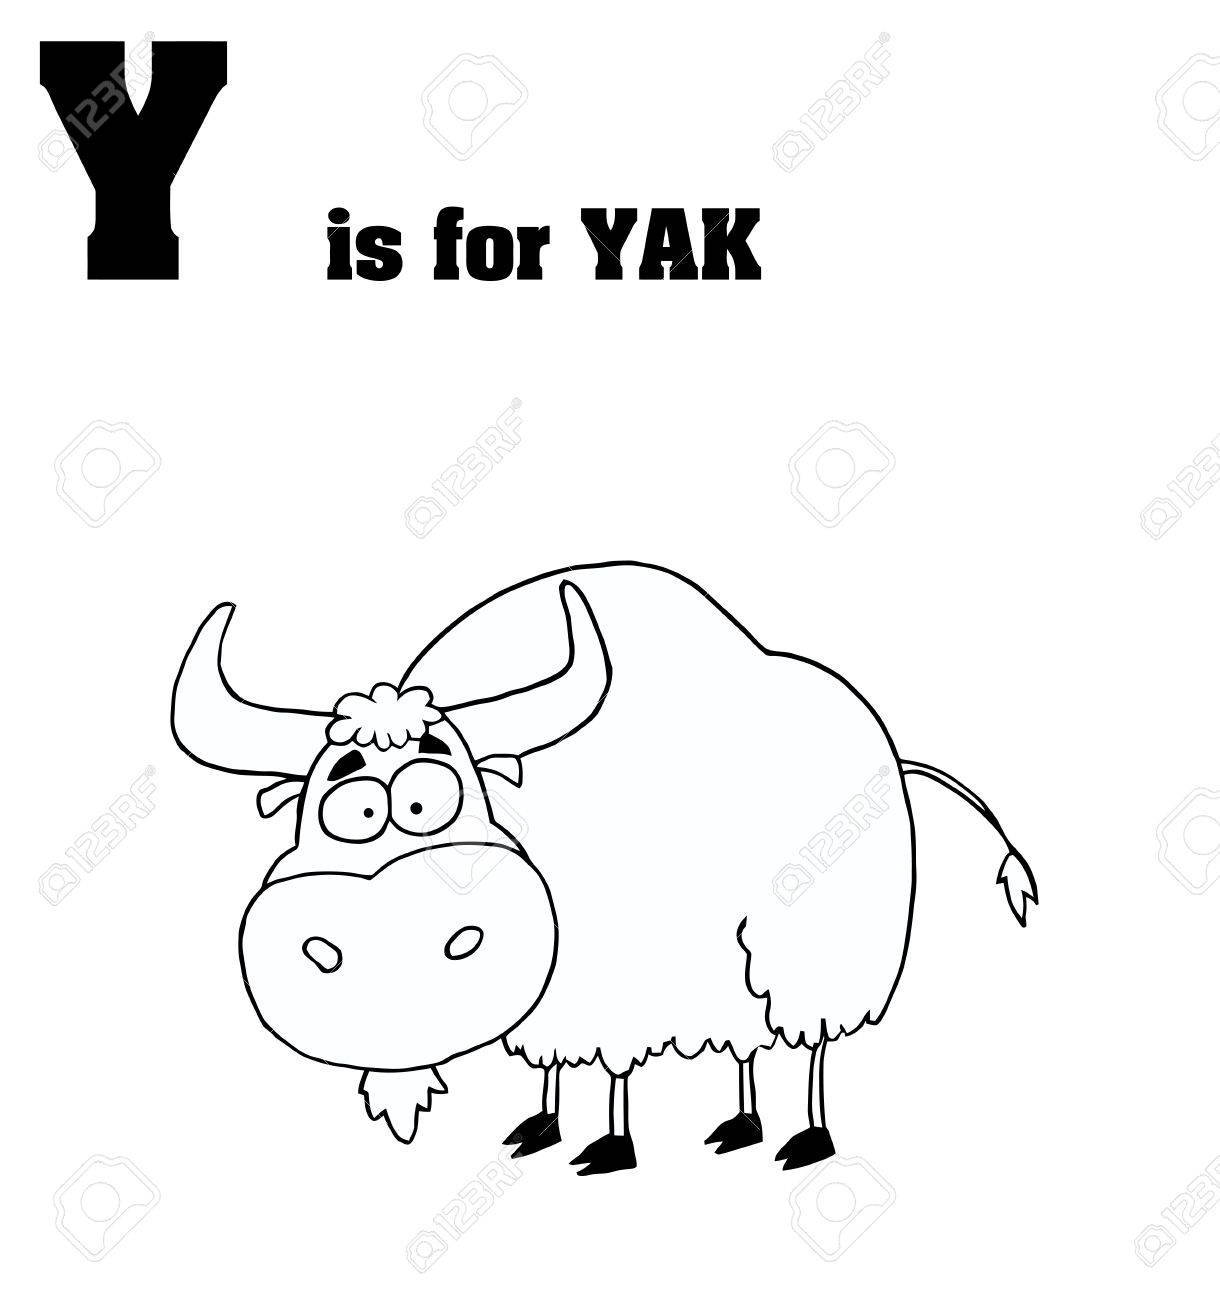 Outlined Yak With Y Is For Yak Text Royalty Free Cliparts Vectors